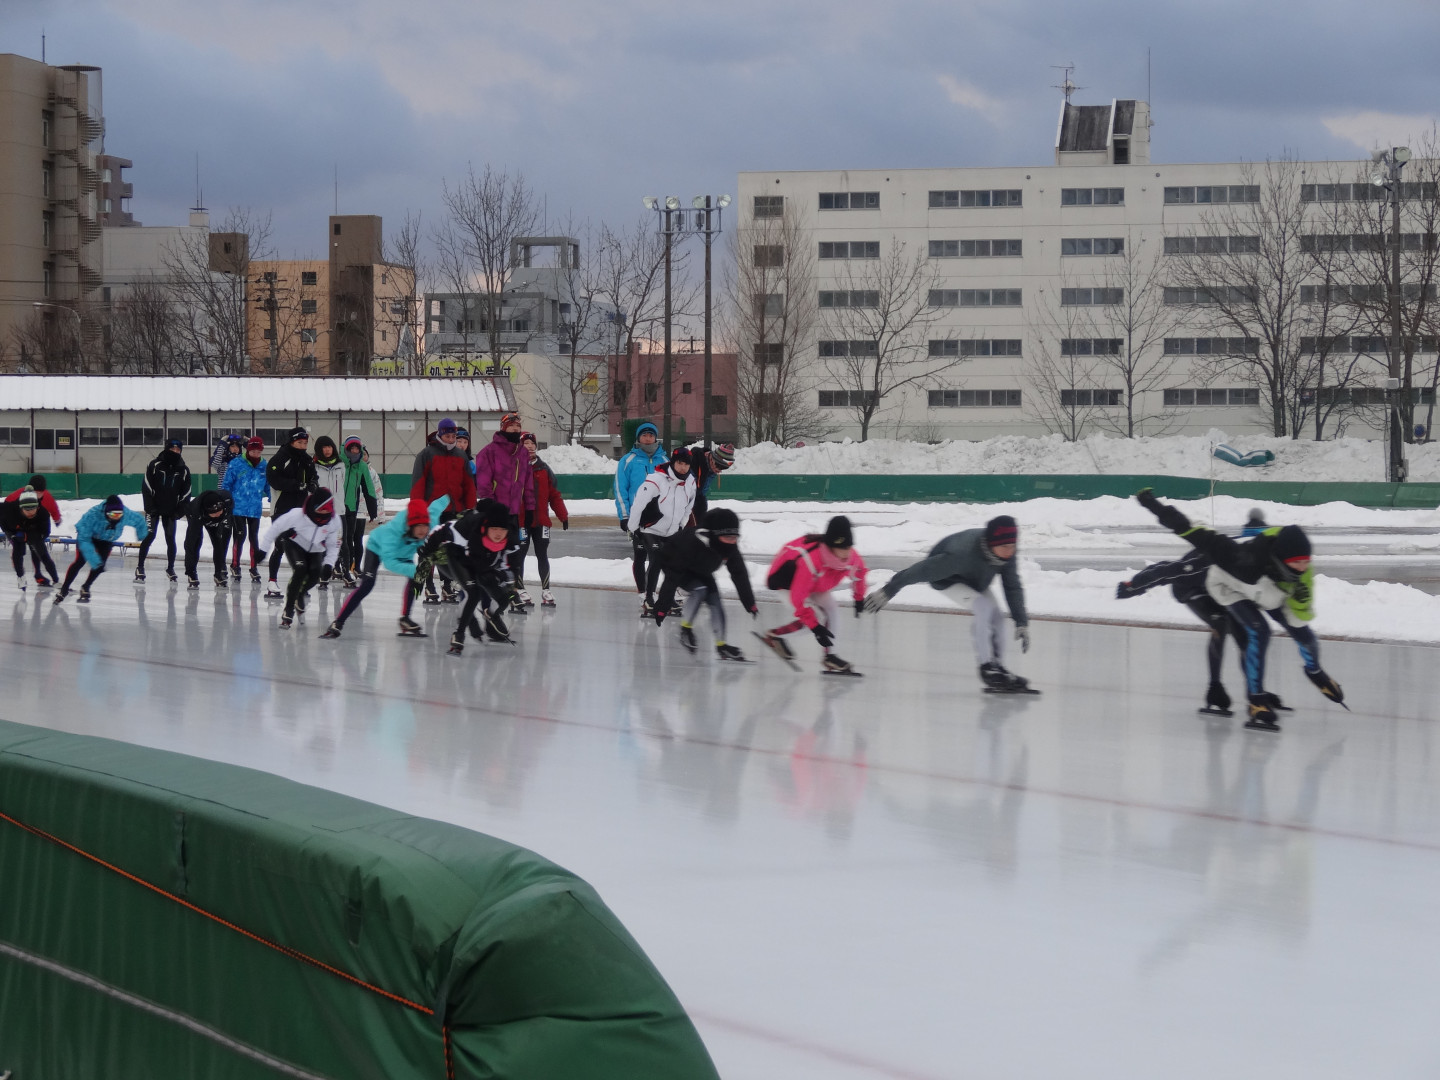 All ages can enjoy ice skating year round!